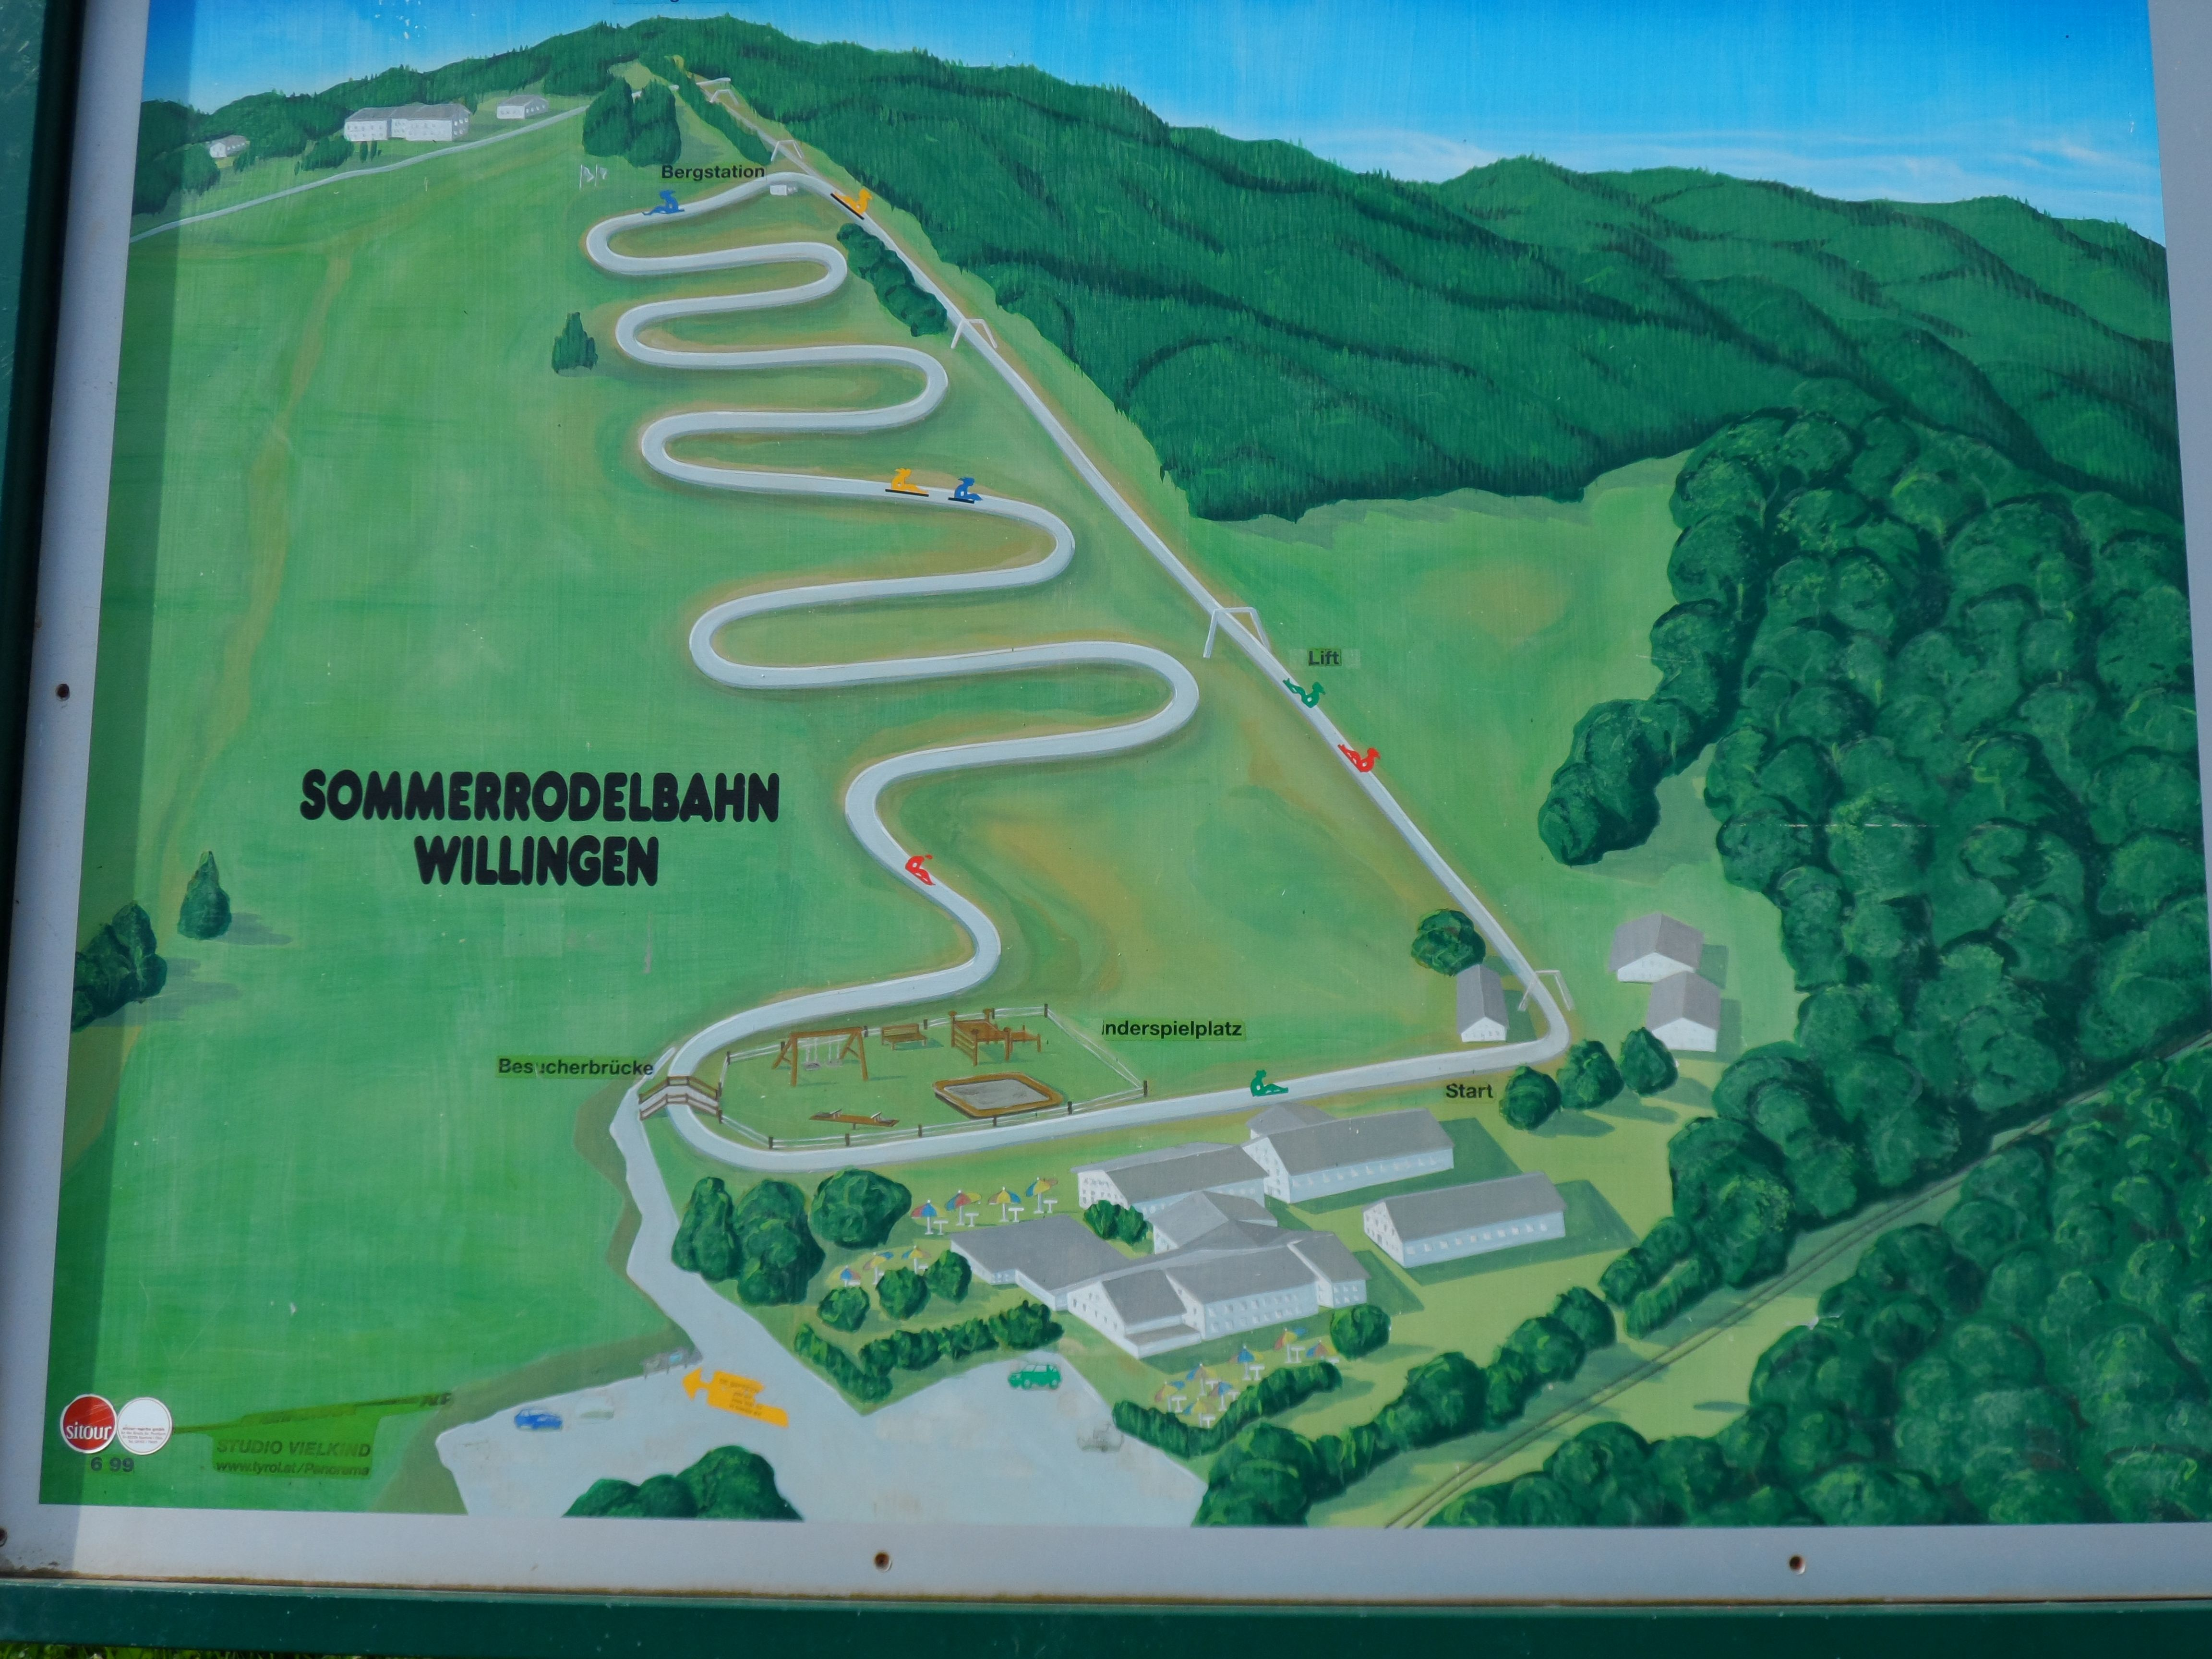 Ferienhaus Mit Pool Willingen Zomerrodelbaan Willingen Plan Der Sommerrodelbahn In Willingen